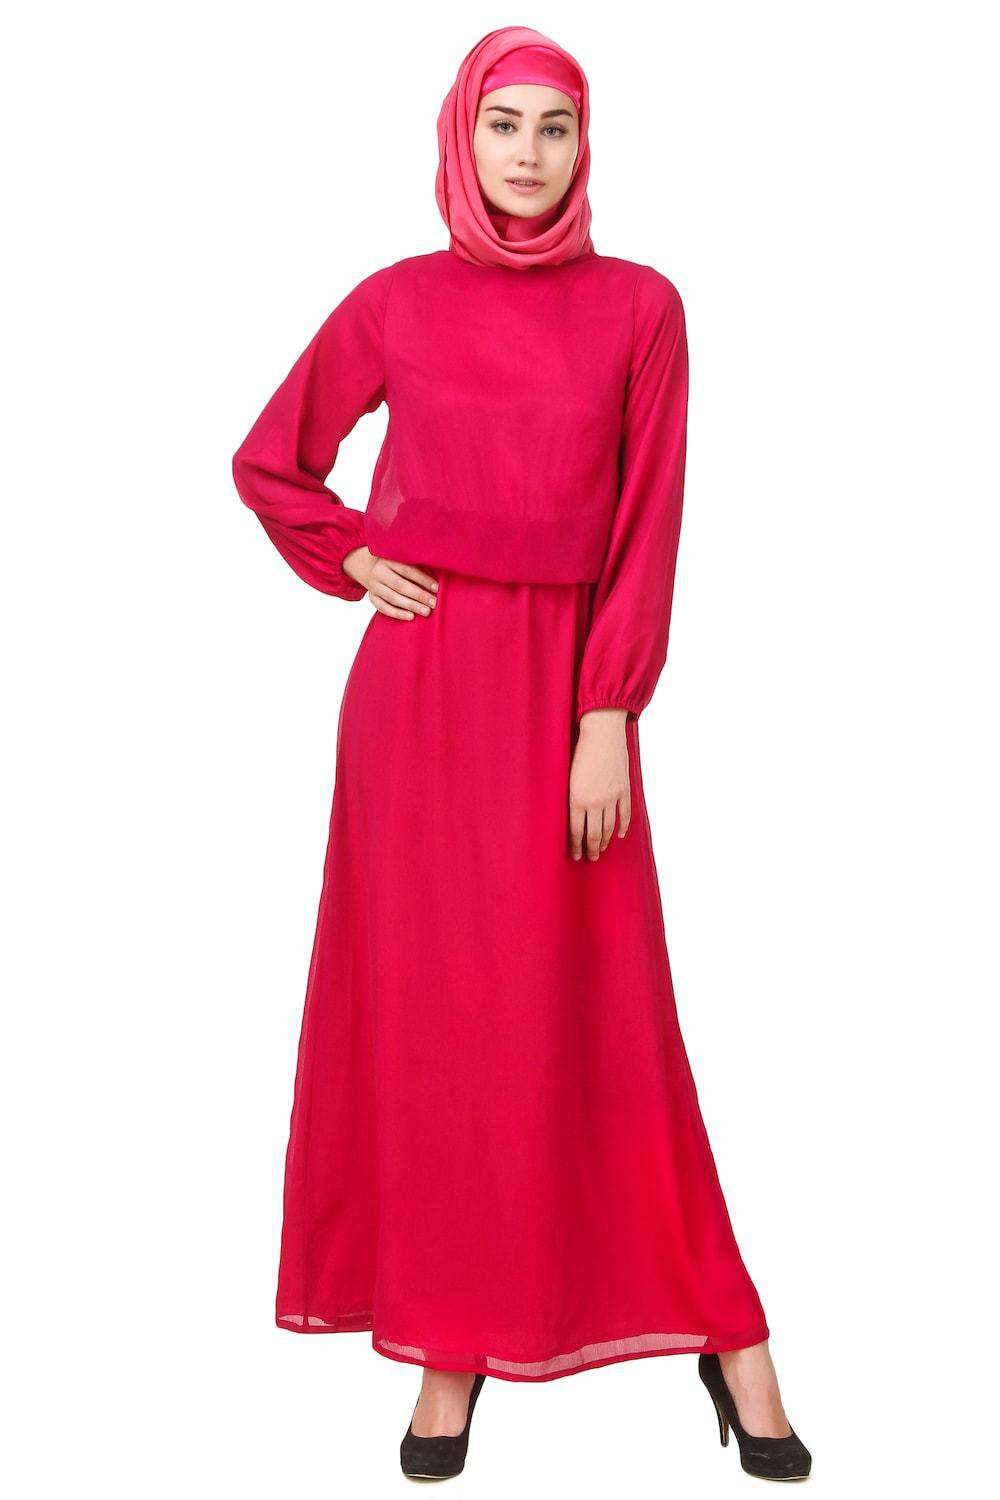 Magenta Dual Layer Chiffon and Satin Abaya AY-704